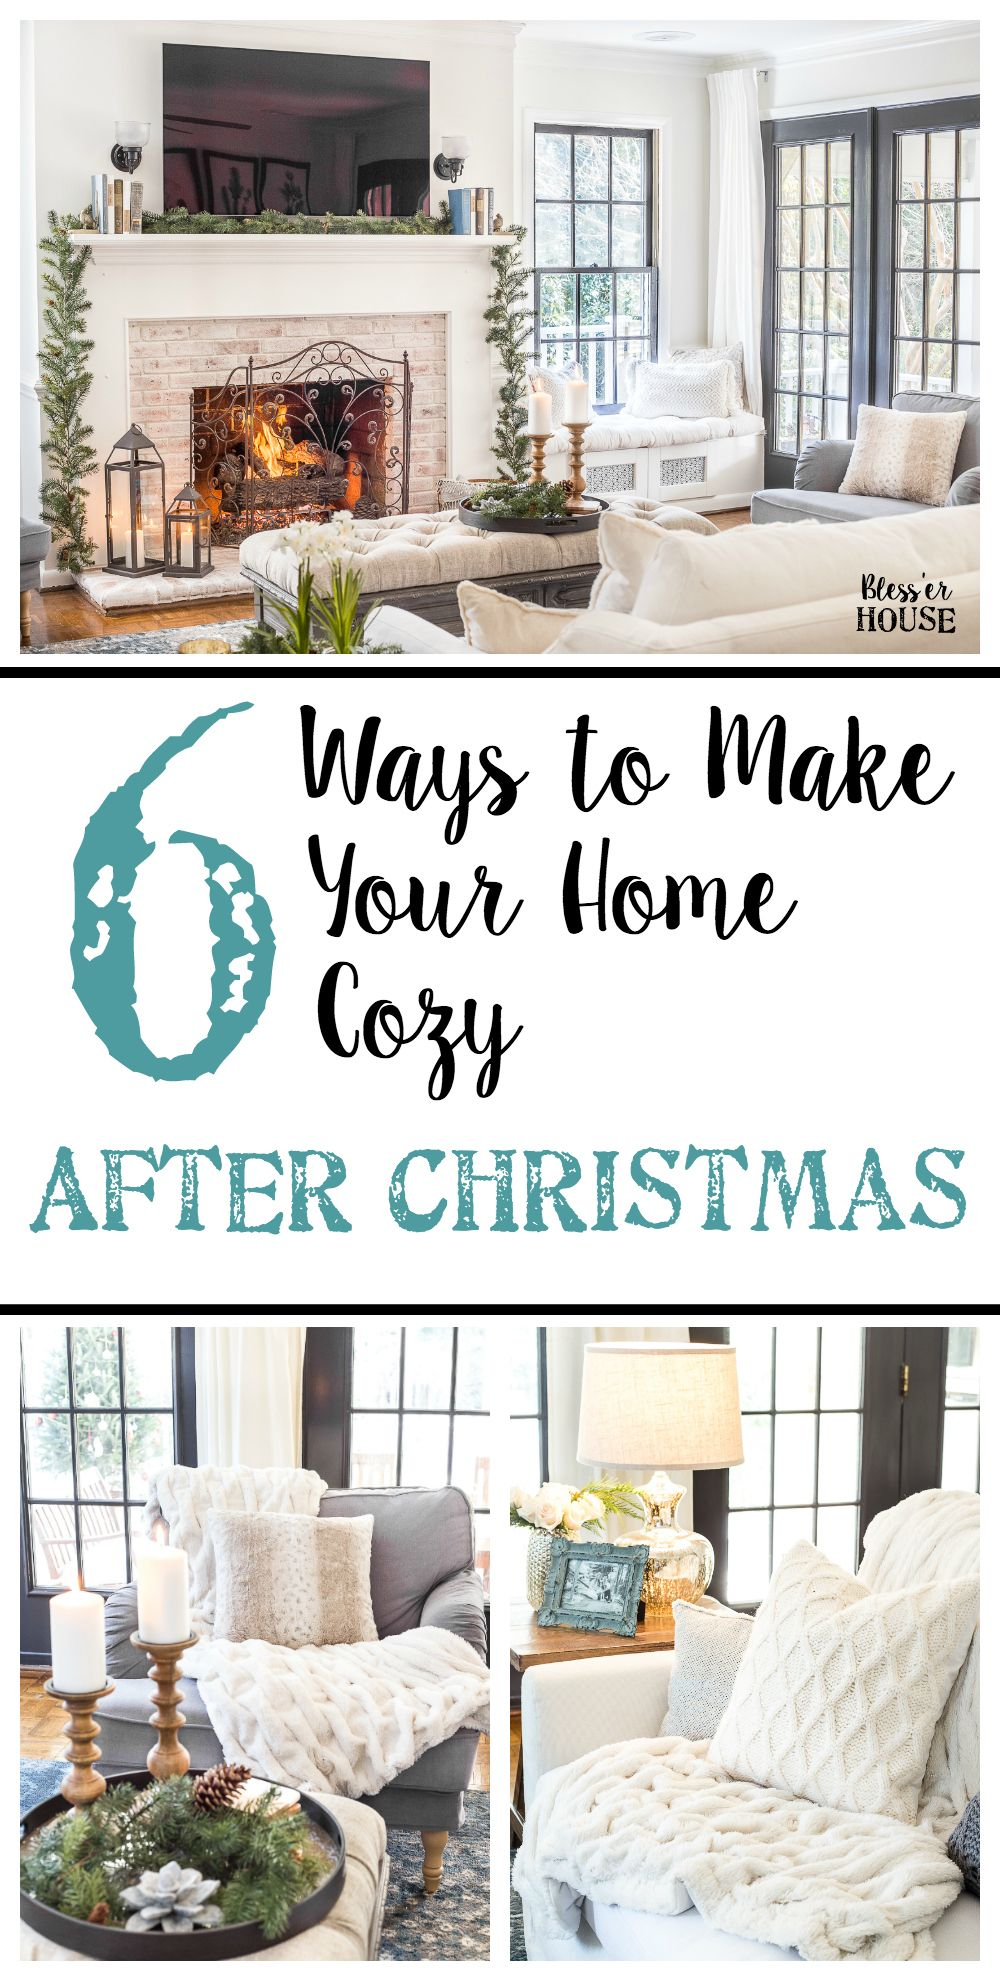 6 Ways To Make Your Home Cozy After Christmas With Images